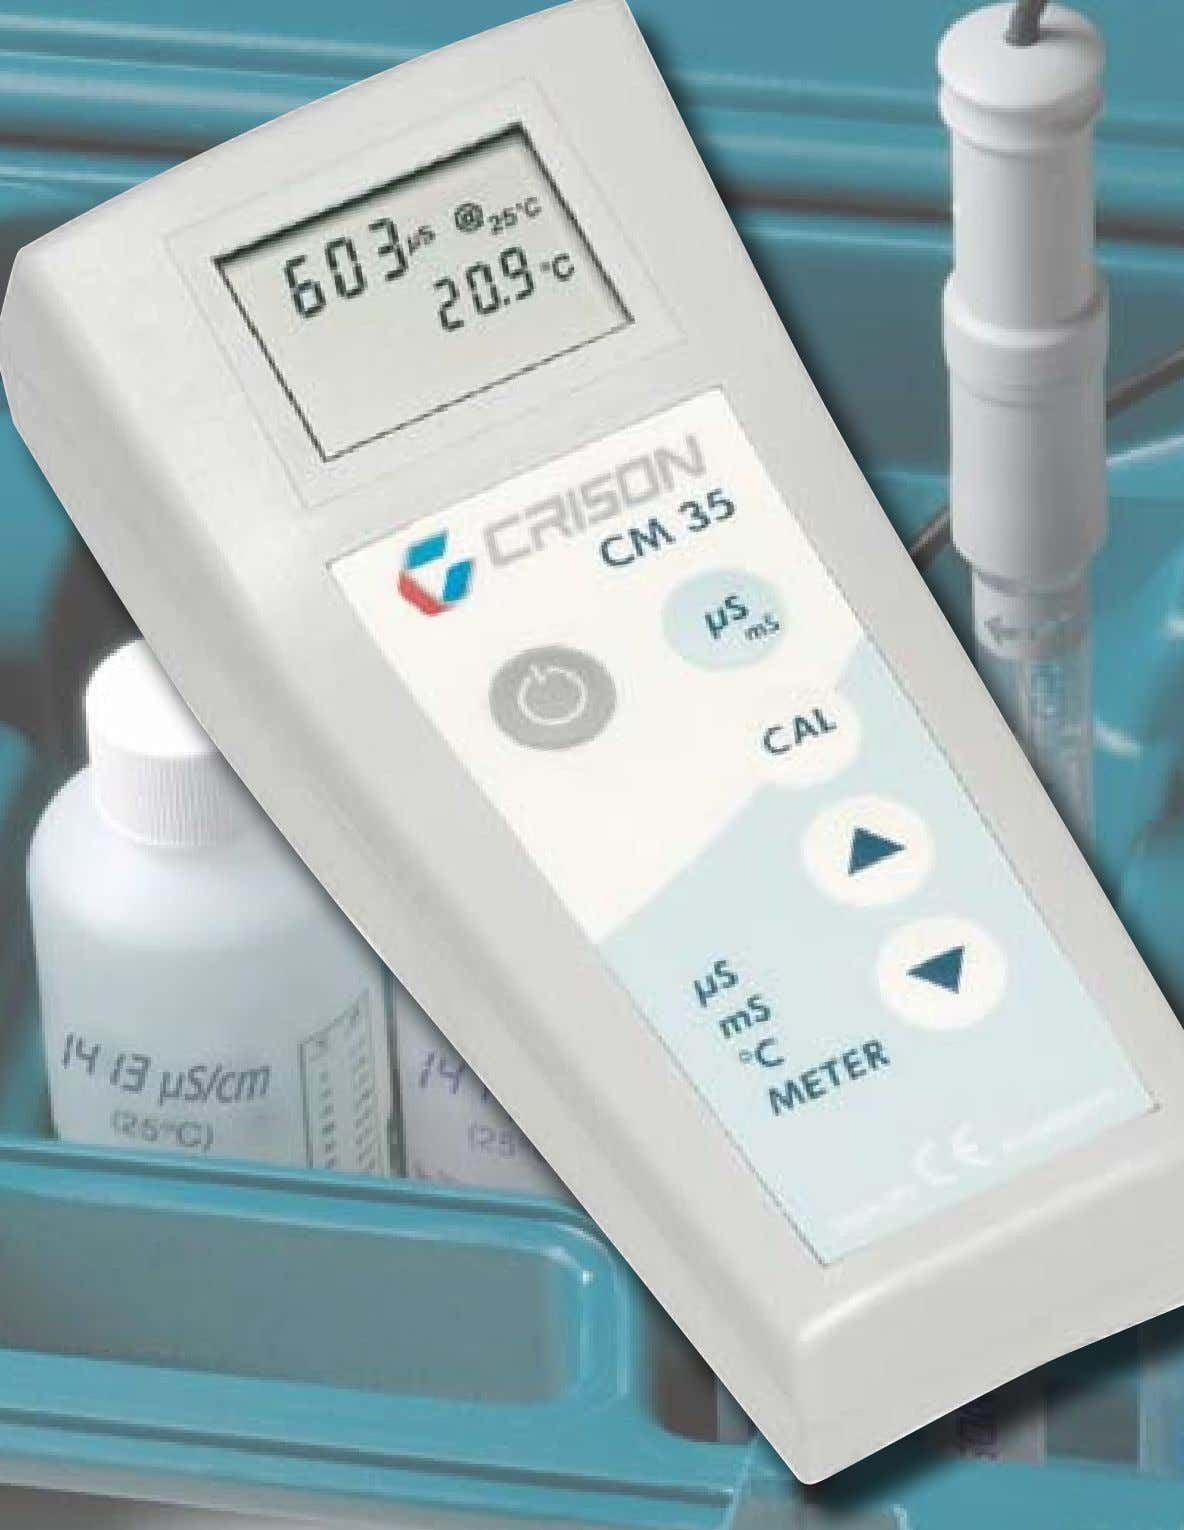 CM 35 µS, mS, o C METER The easy way